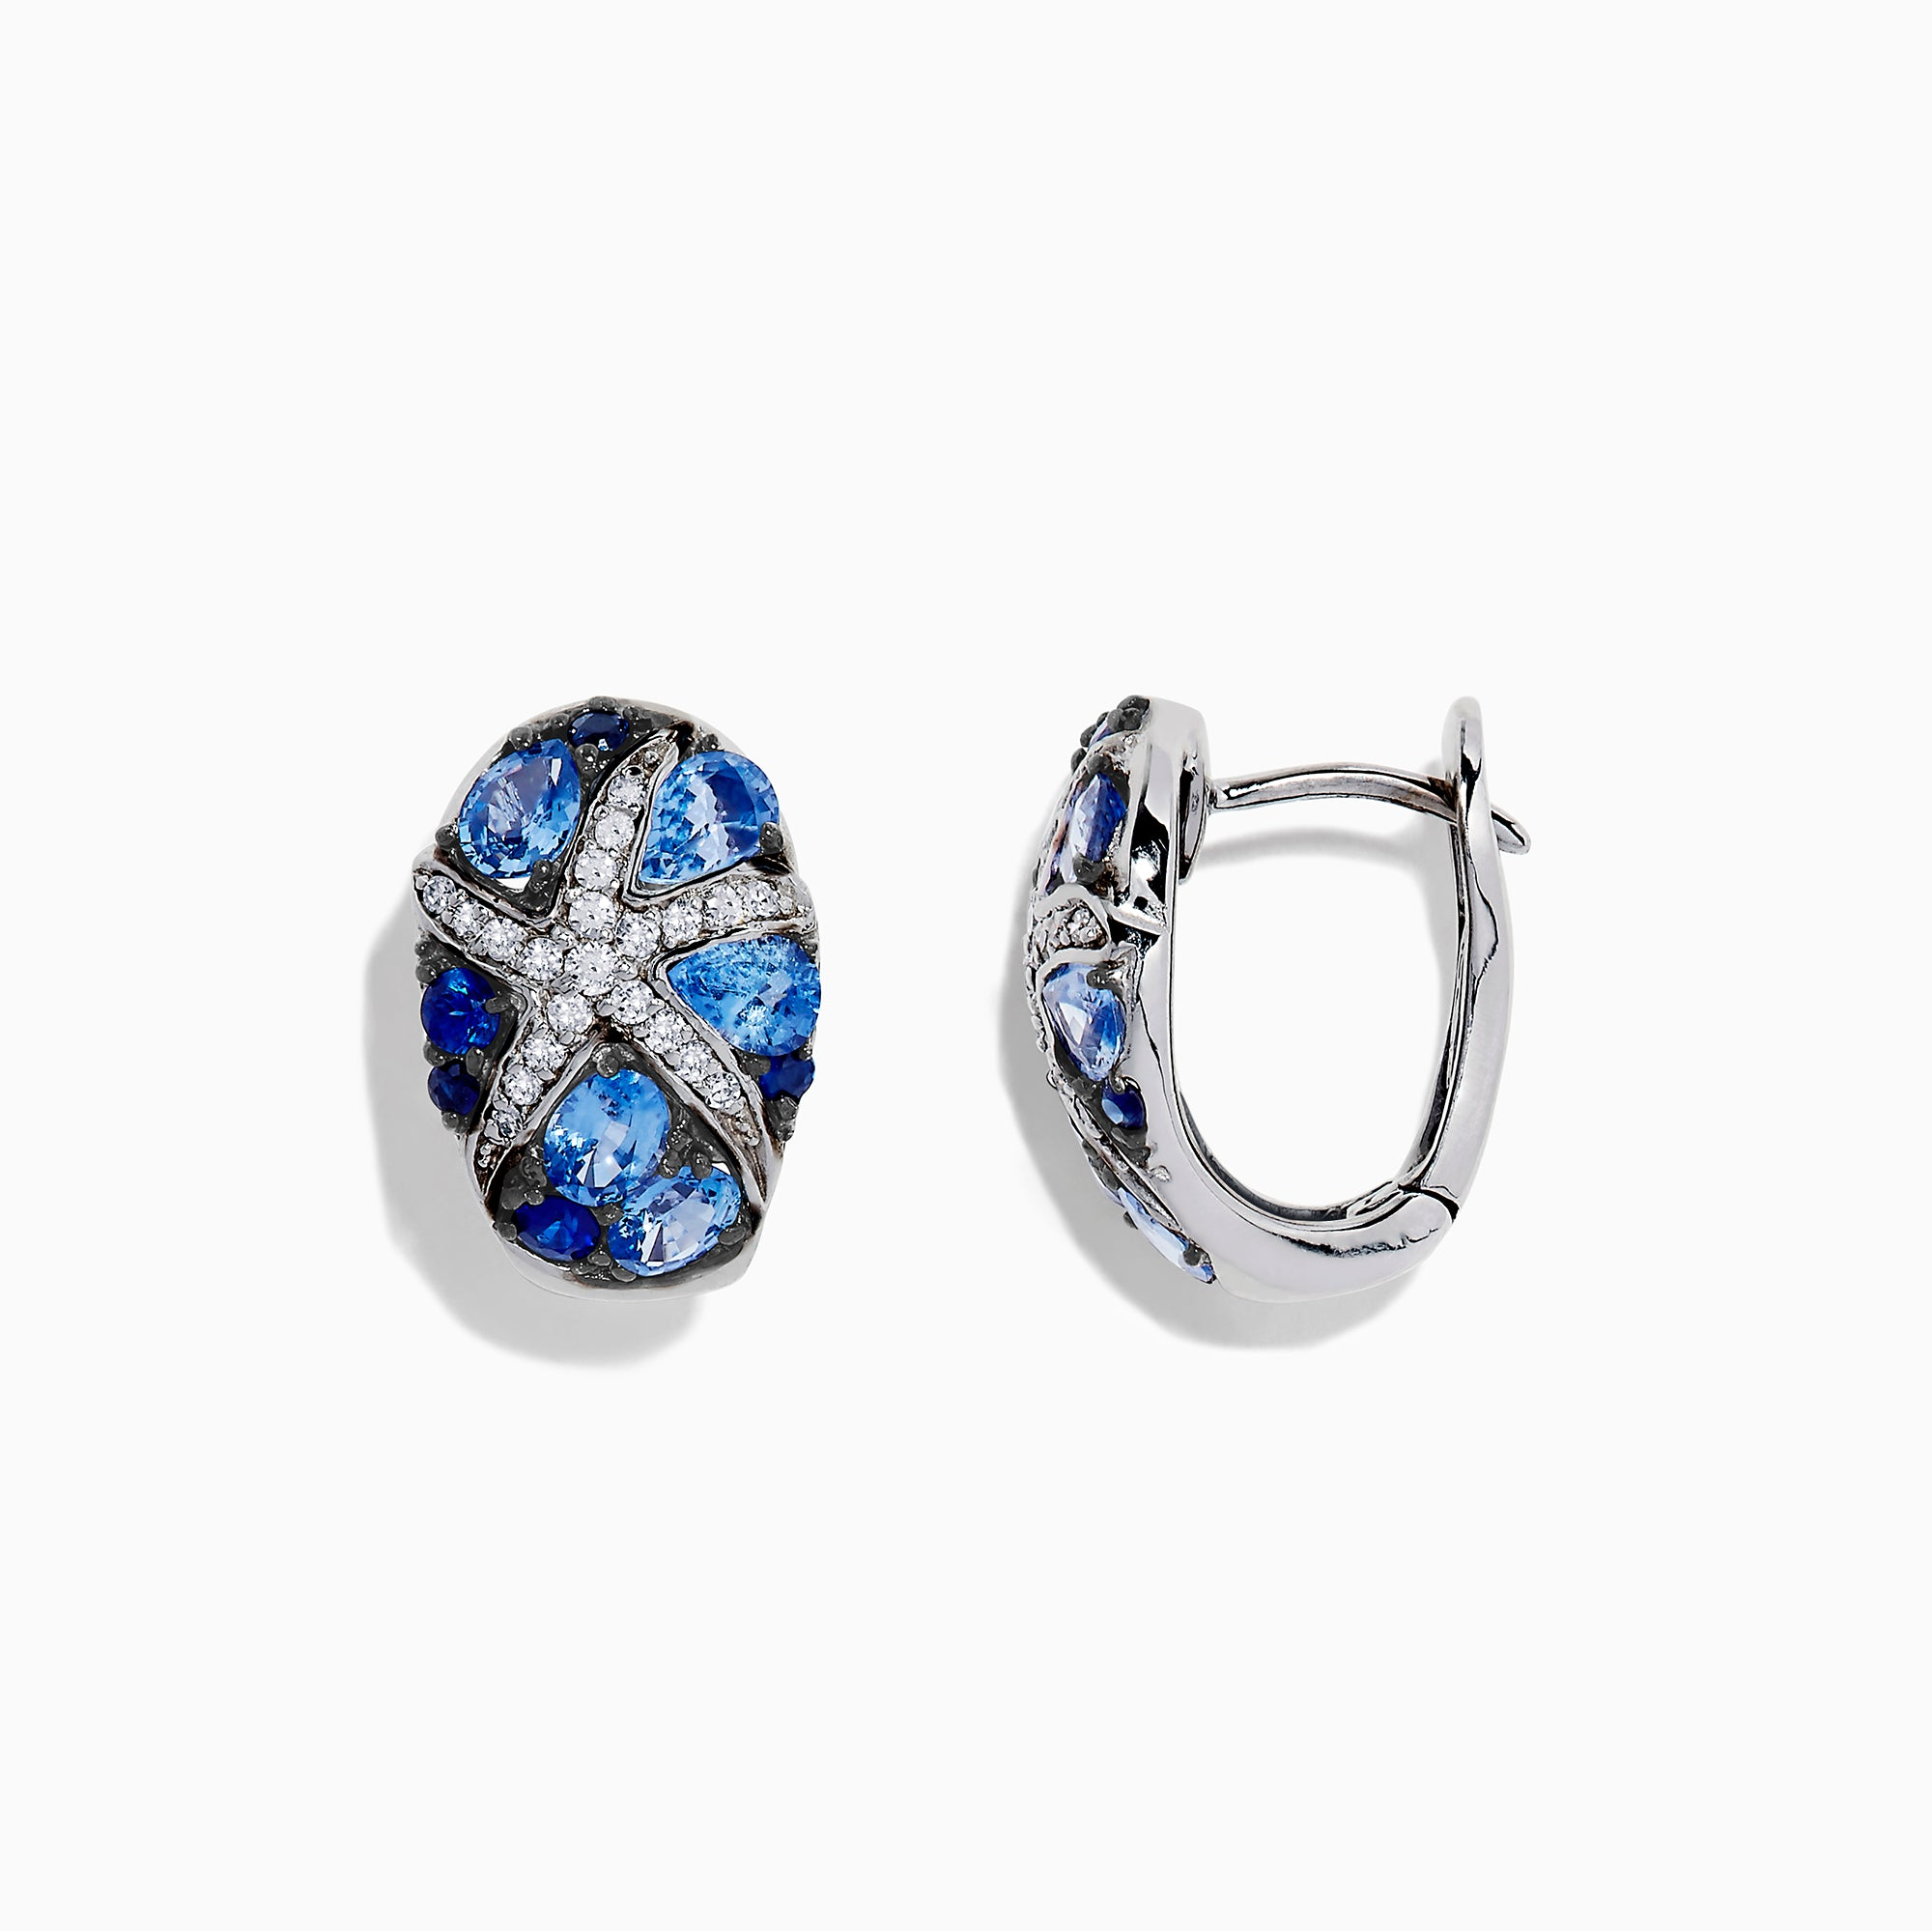 Effy Seaside 14K White Gold Sapphire & Diamond Starfish Earrings, 2.97 TCW